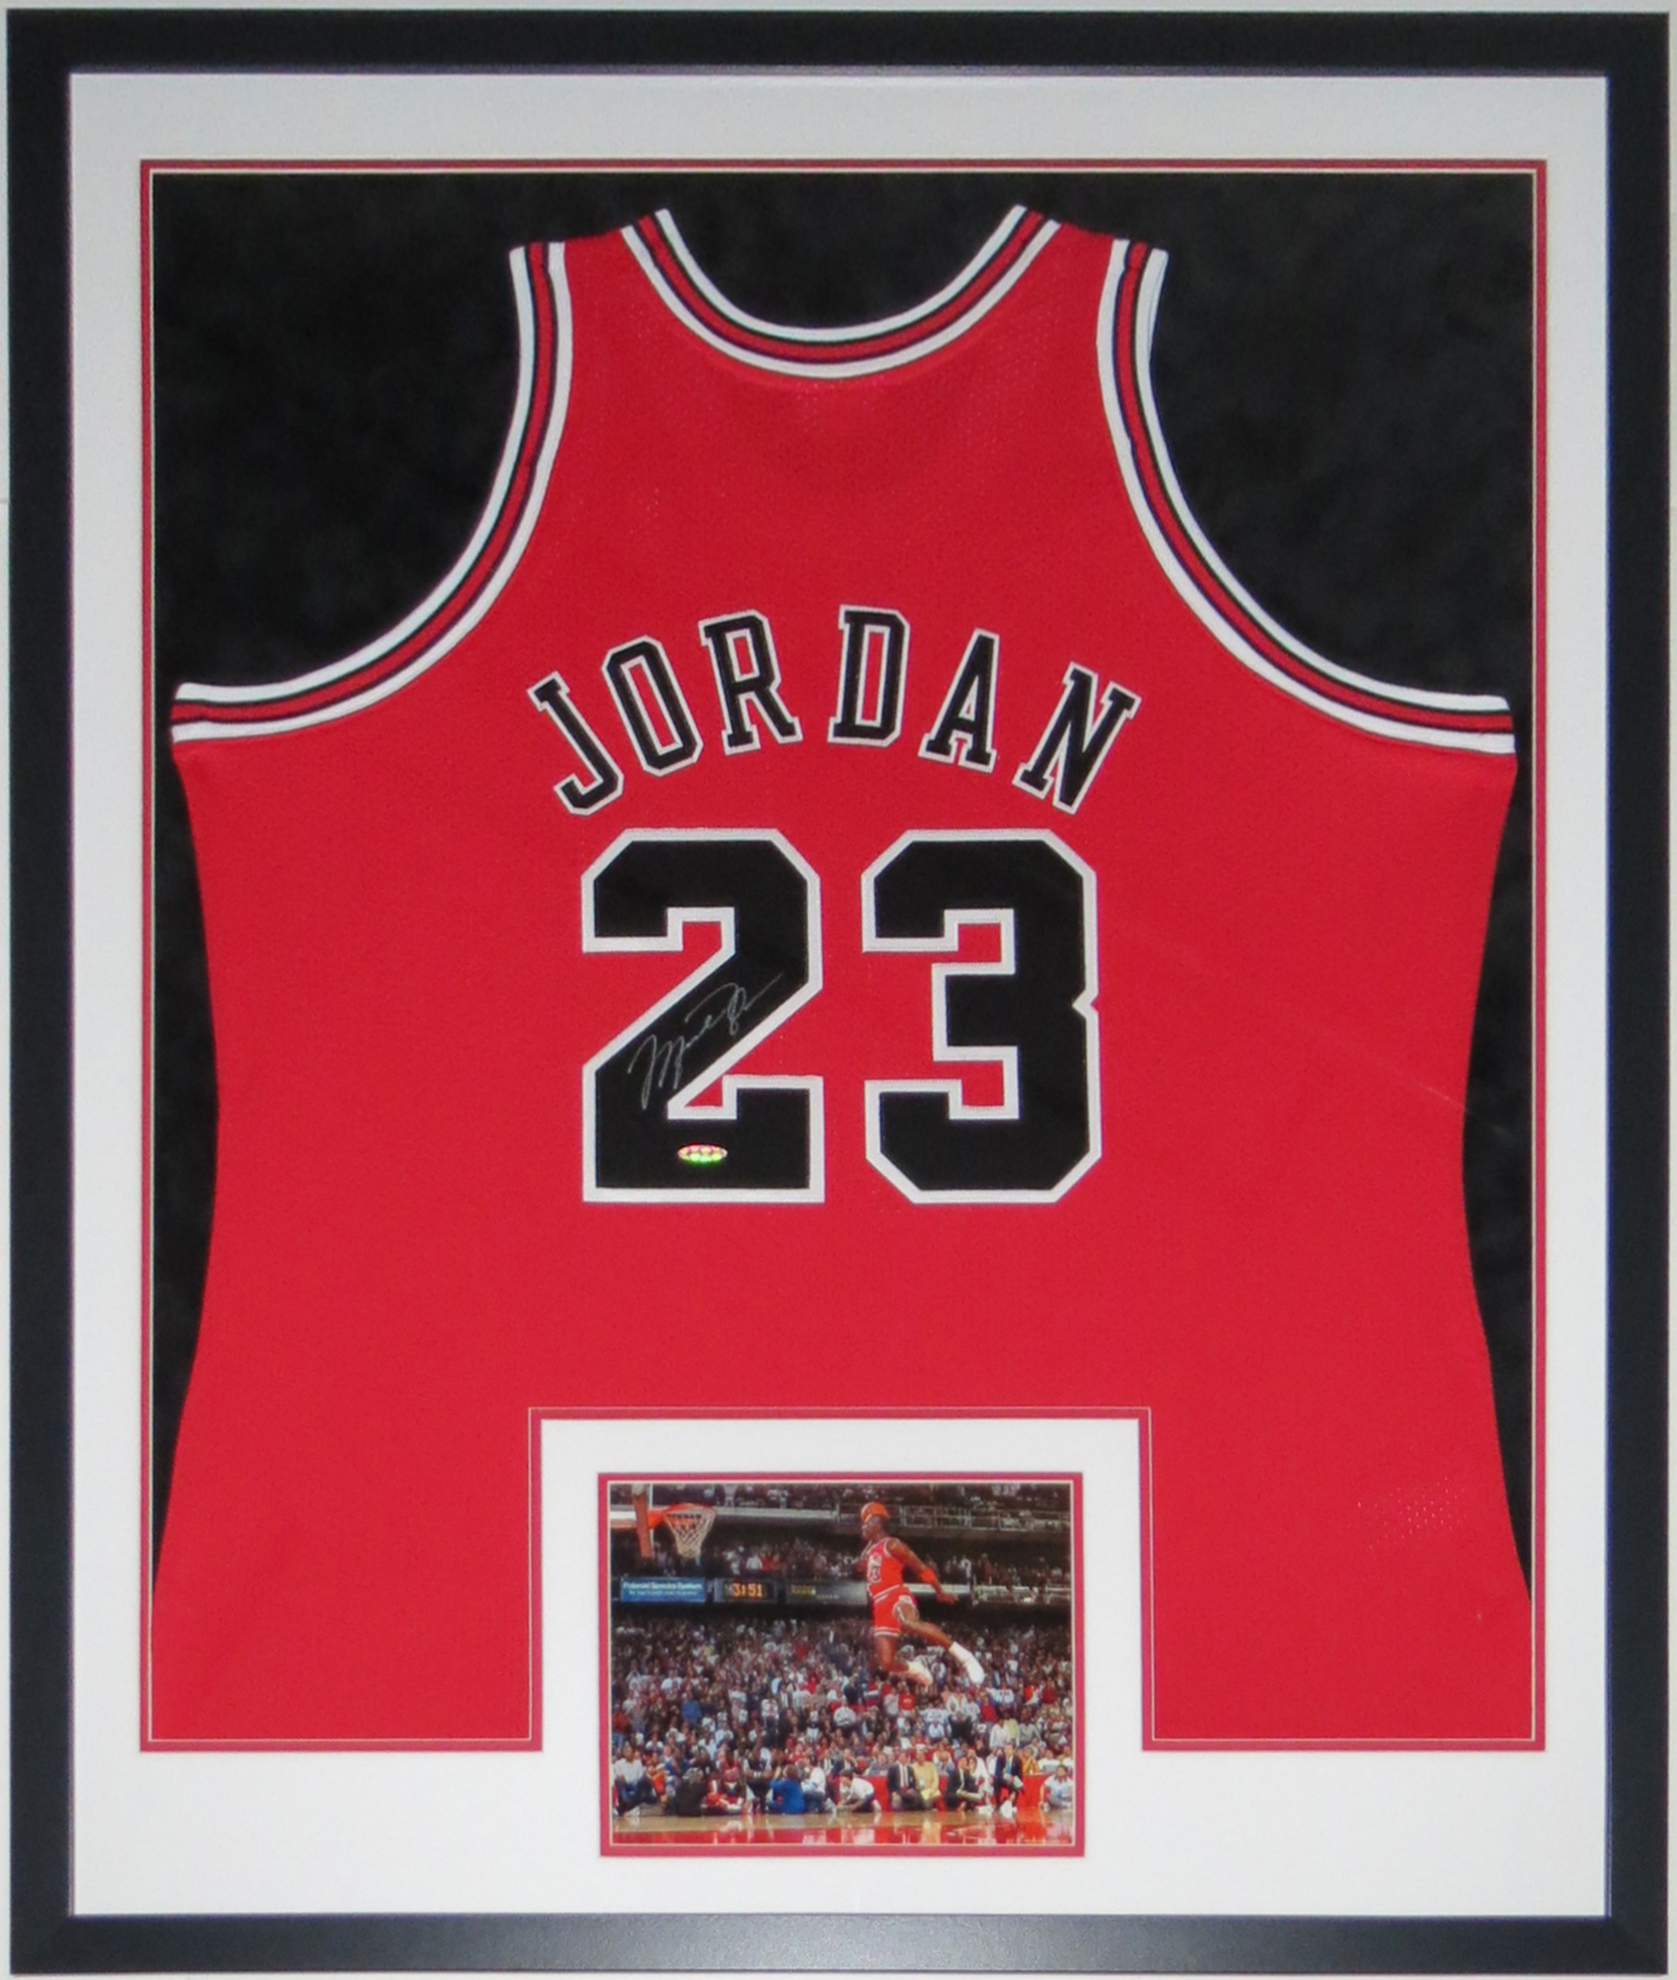 Michael Jordan Signed Authentic Nike Chicago Bulls Jersey - UDA COA Upper Deck Authenticated - Professionally Framed & 1988 Slam Dunk Contest 8x10 34x42